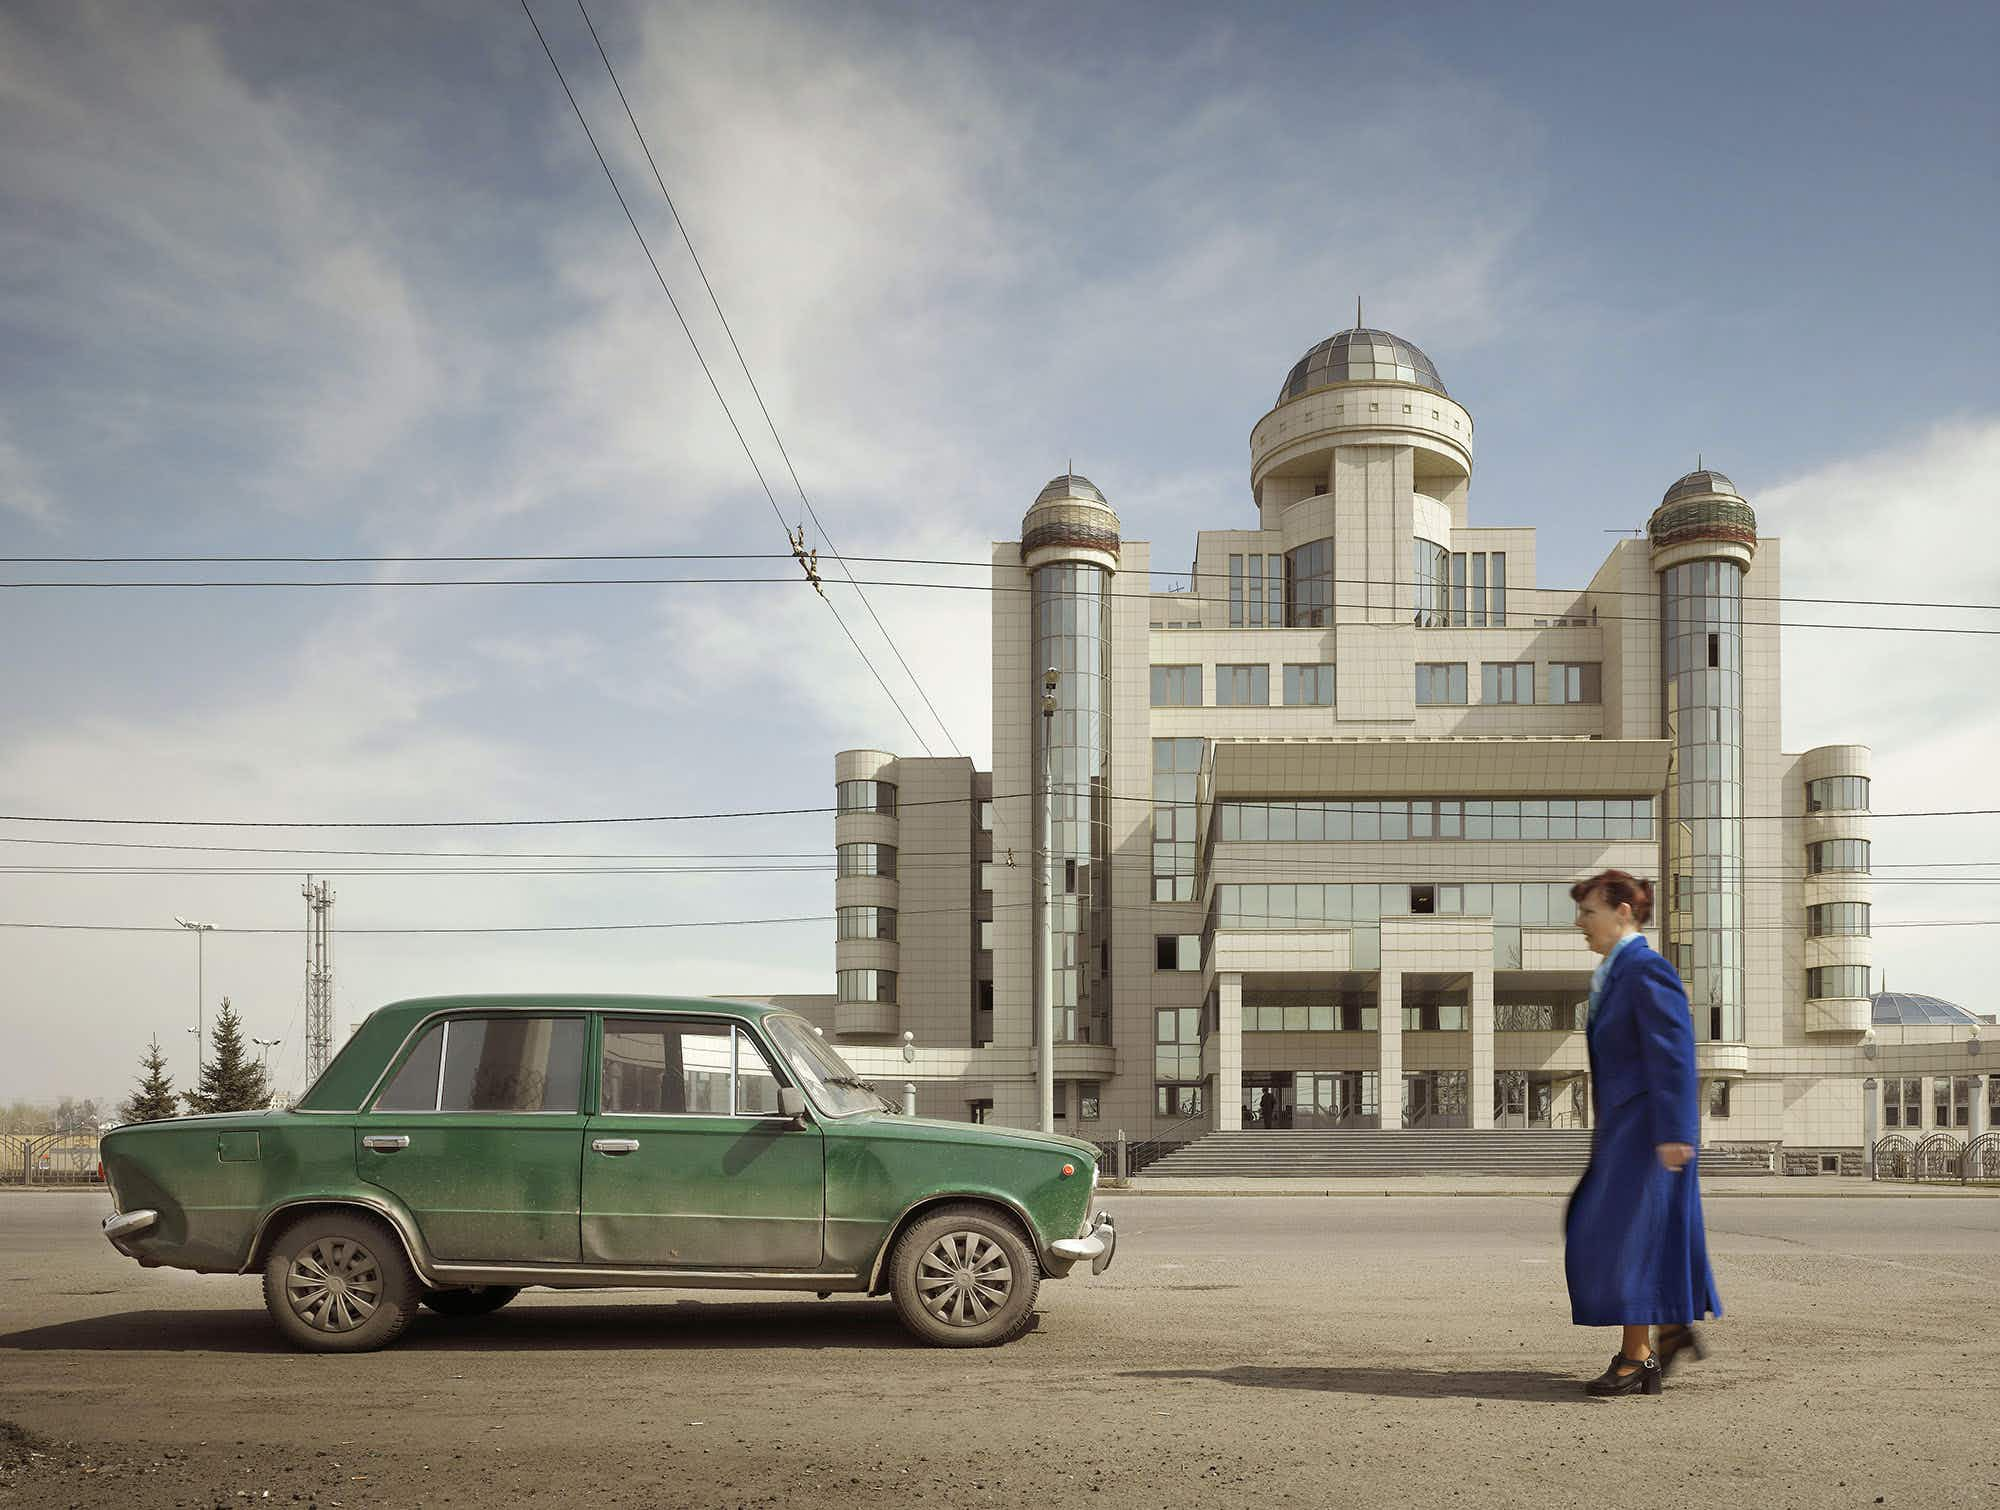 Unique post-Soviet architecture photographed throughout the years